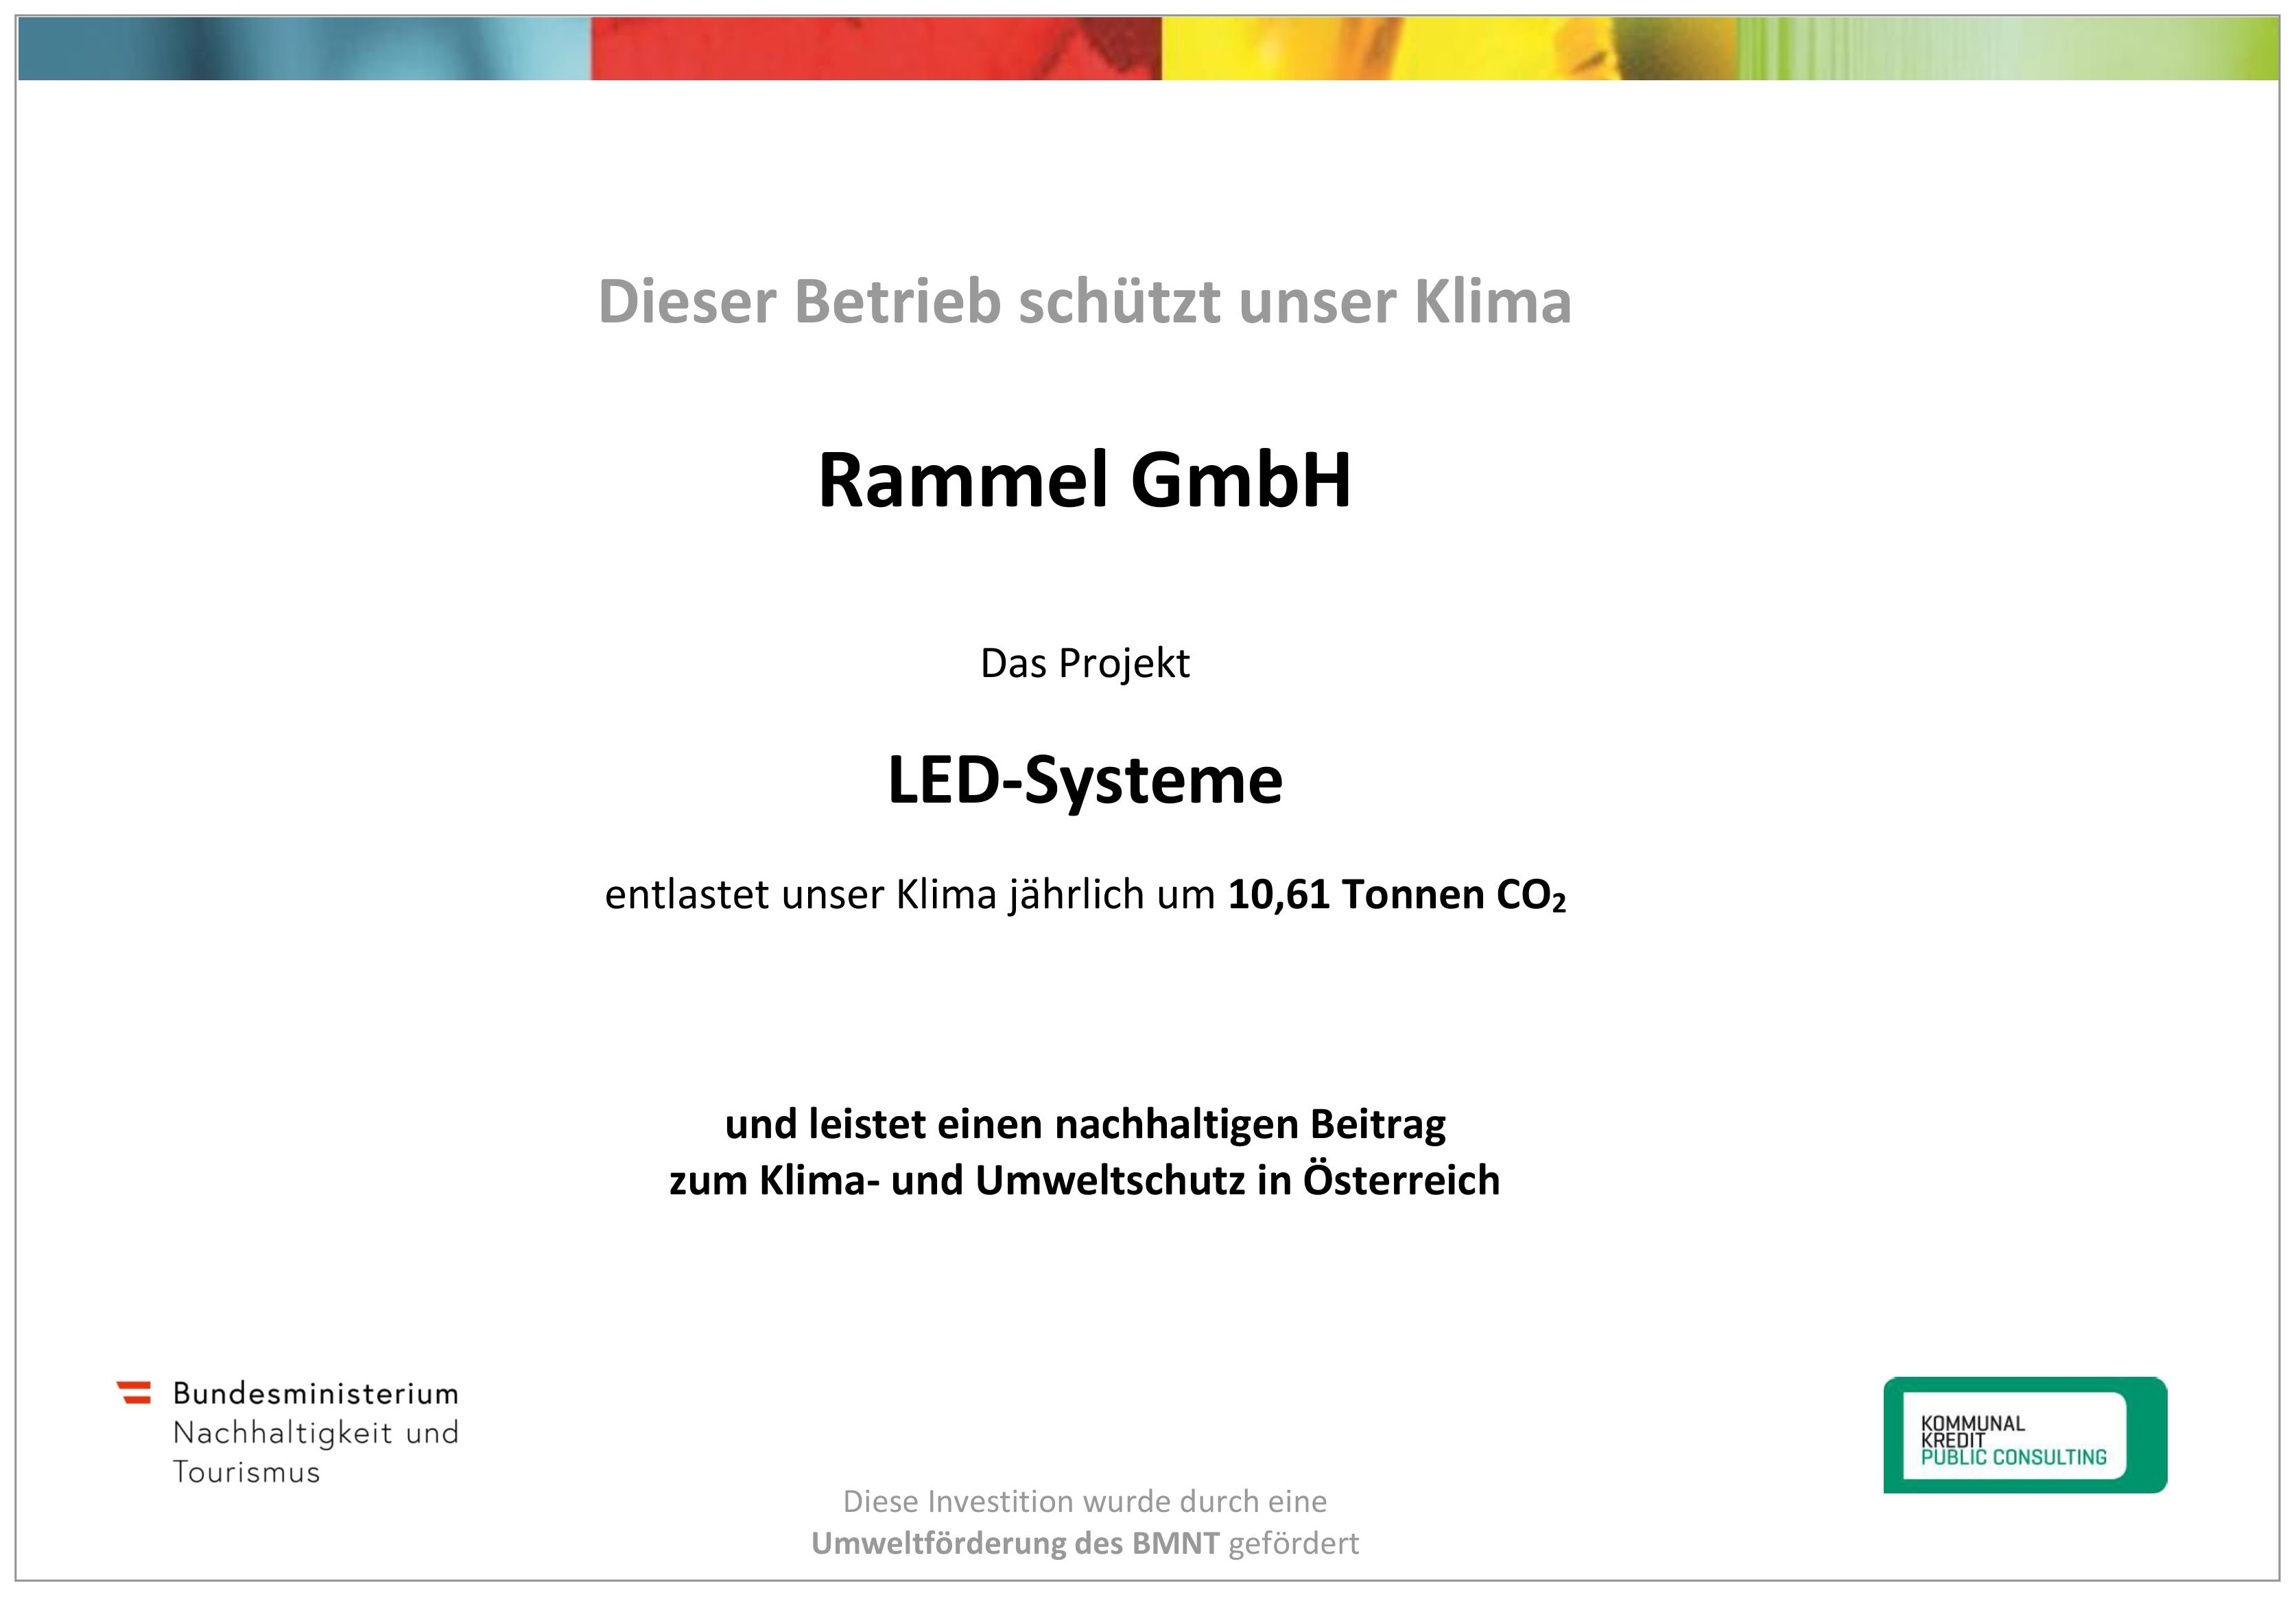 LED-Systeme